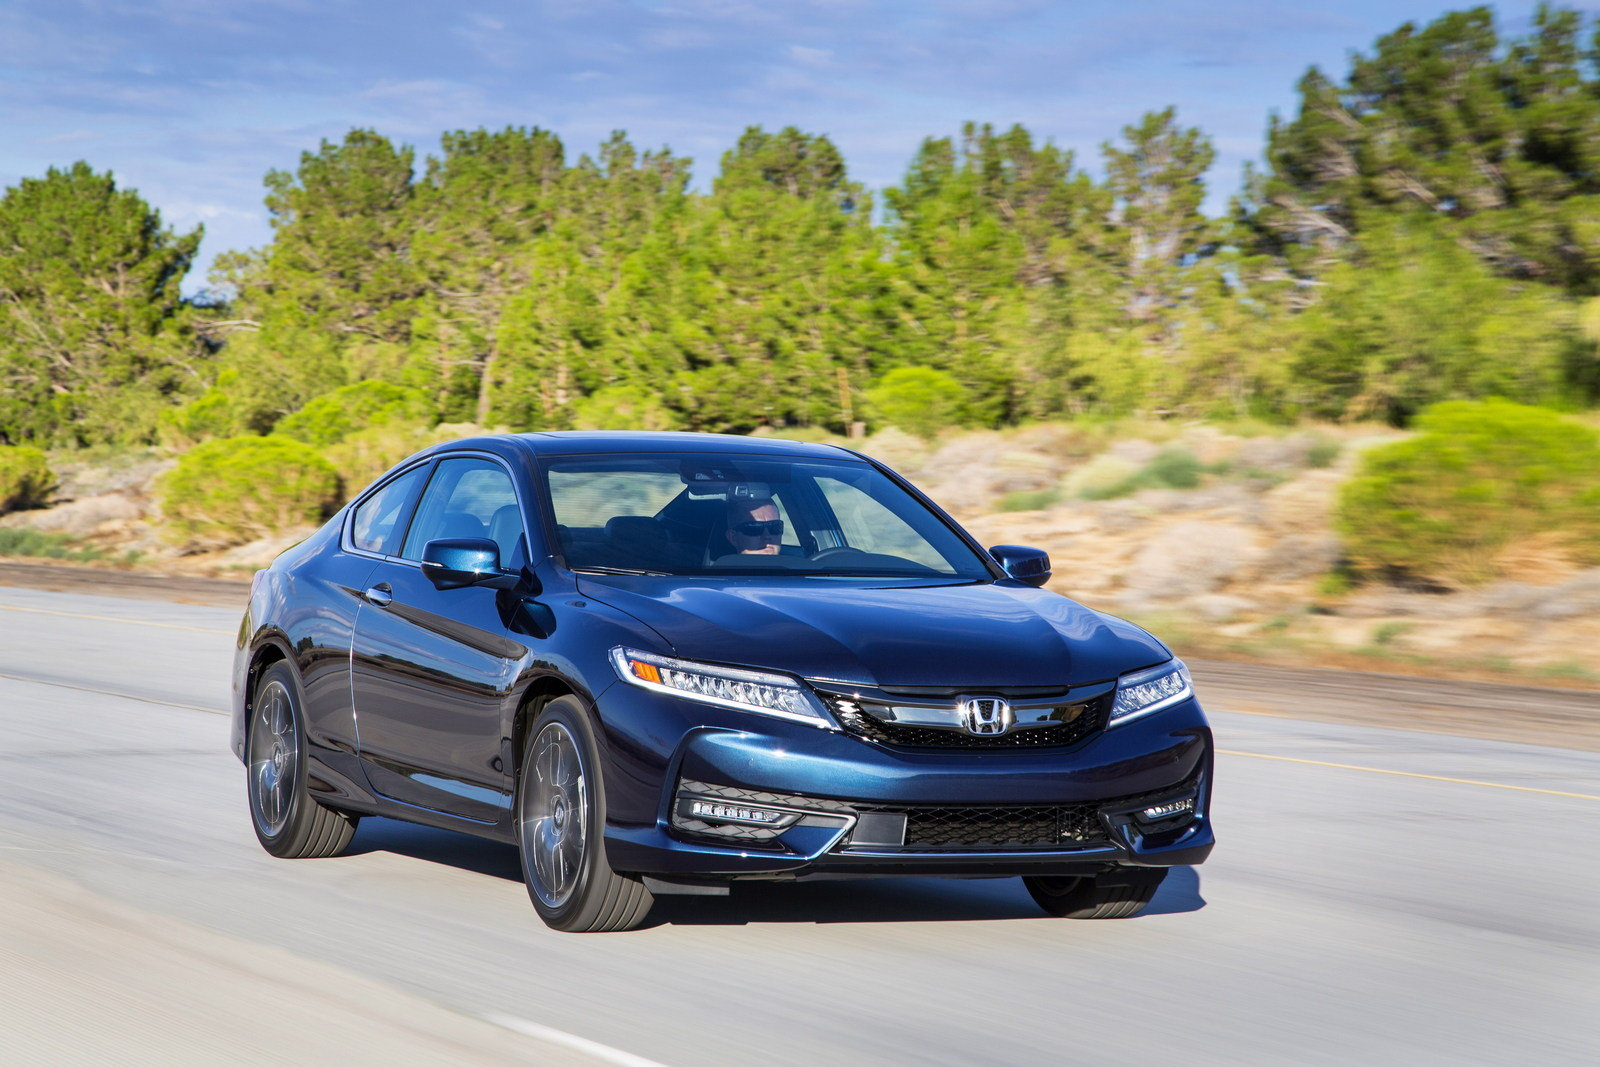 2016 honda accord coupe picture 639896 car review top speed. Black Bedroom Furniture Sets. Home Design Ideas